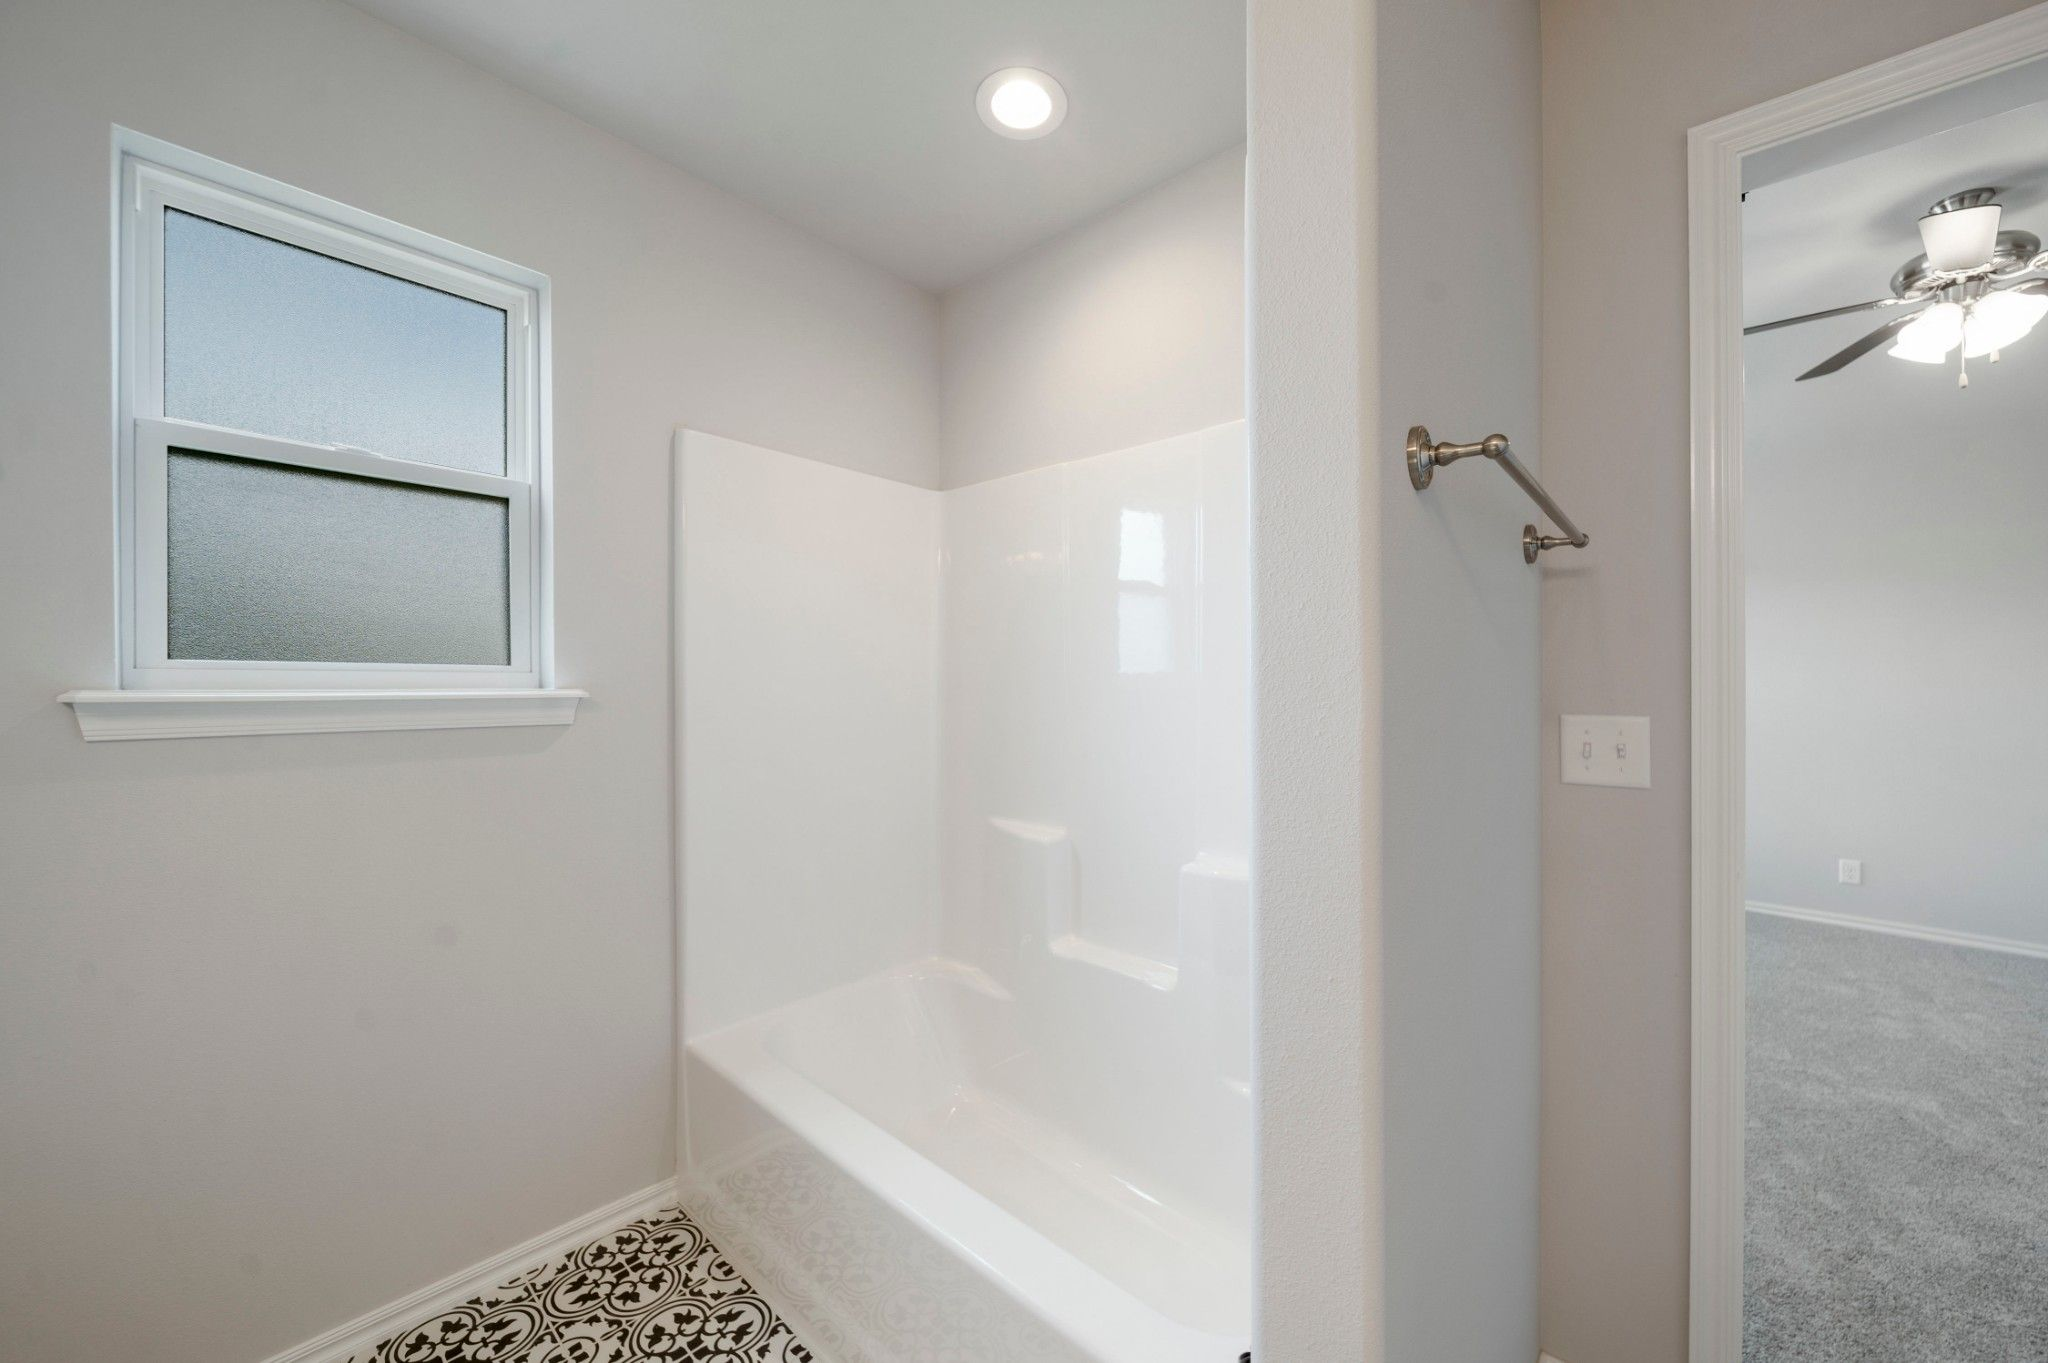 Bathroom featured in the Denver By Capital Homes in Tulsa, OK